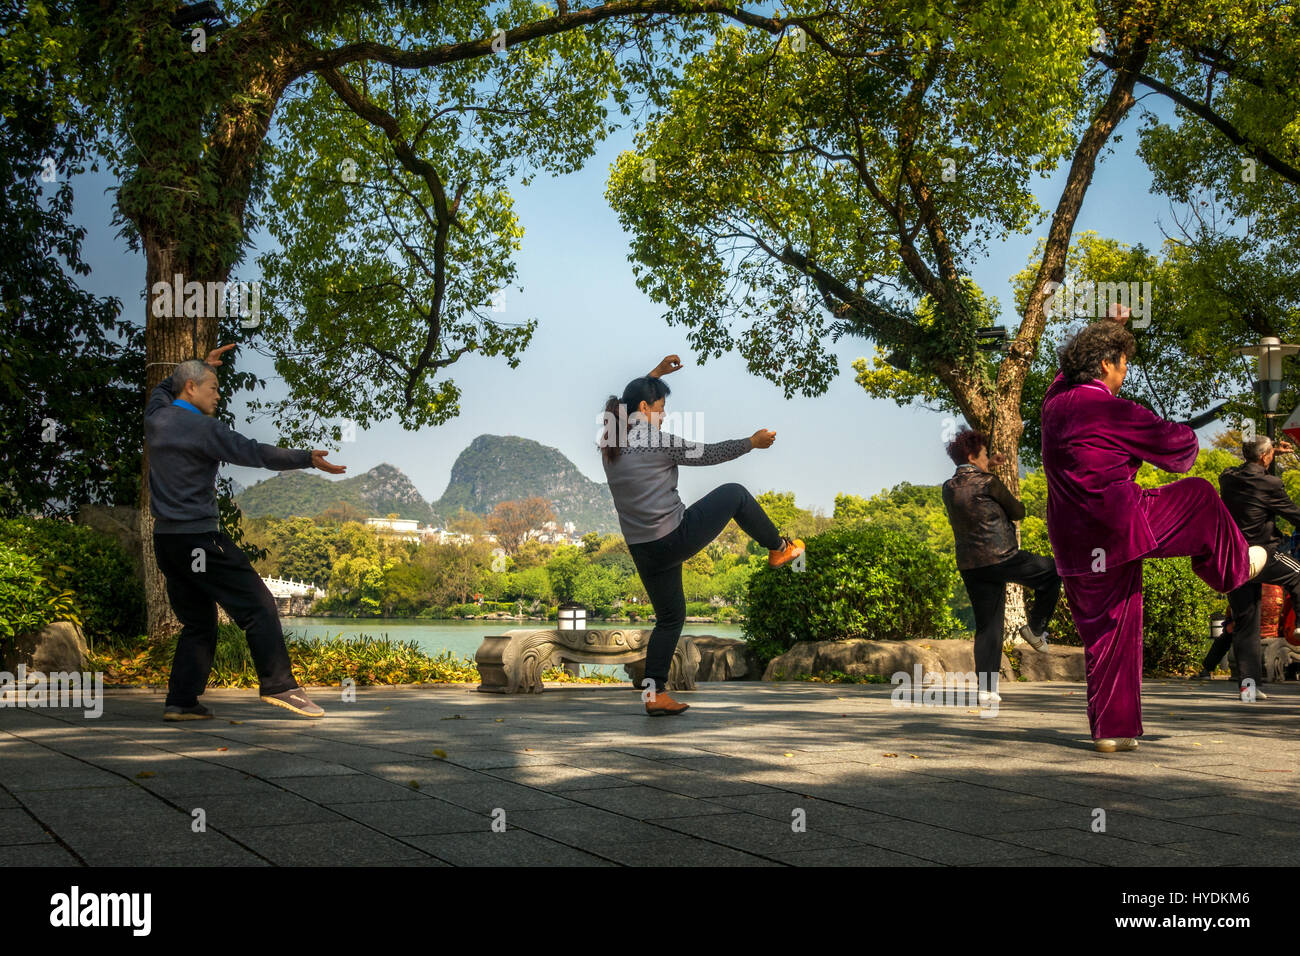 People enjoying Tai Chi exercise beside the water in Guilin, China - Stock Image